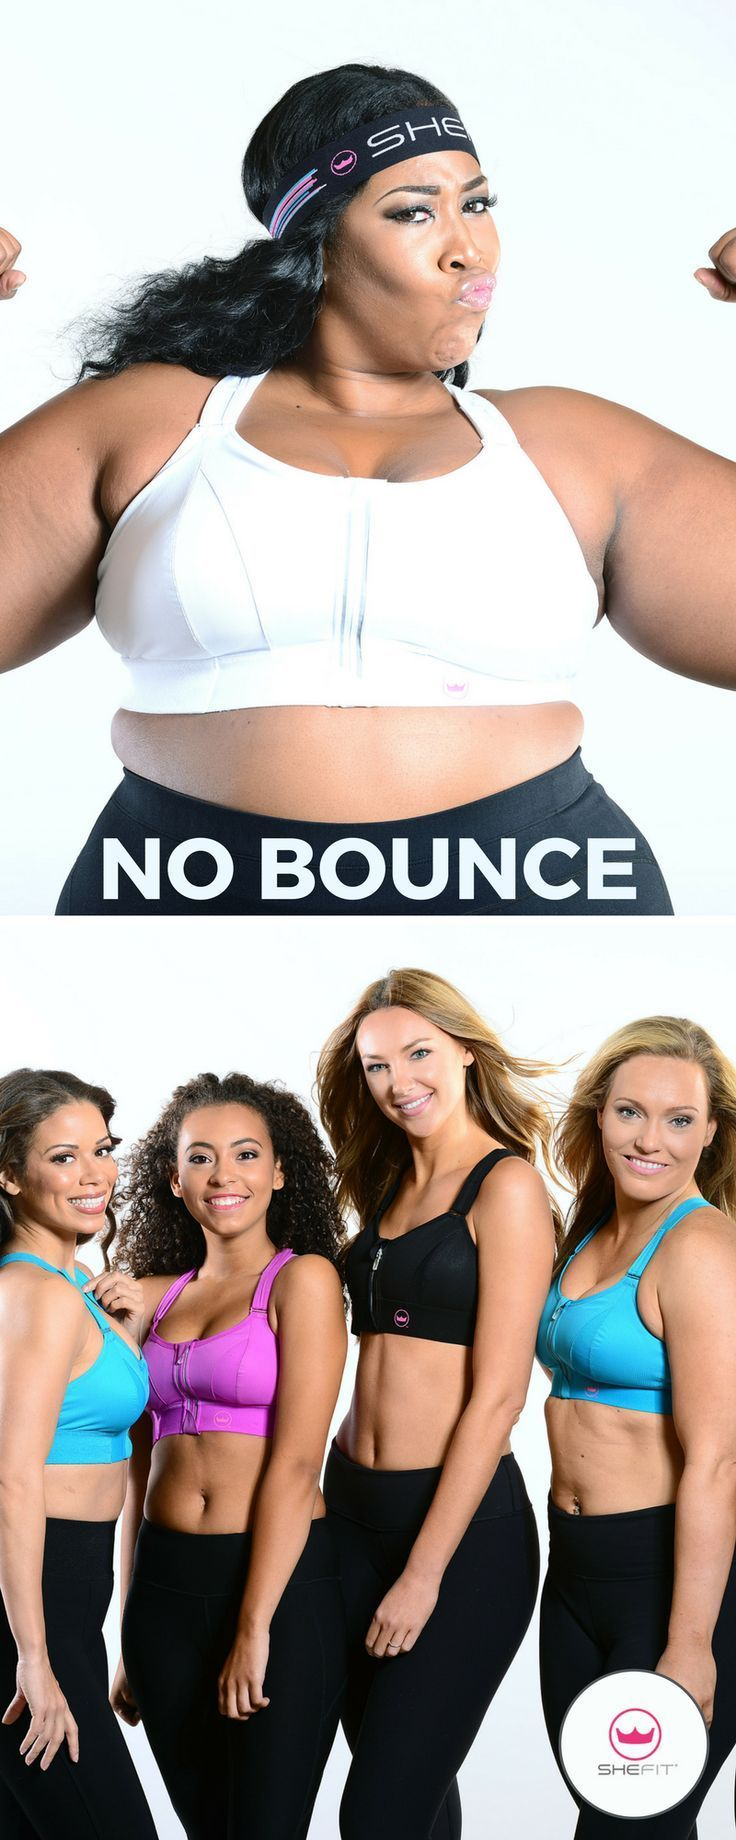 The Shefit Ultimate Sports Bra is for all women regardless of age, athletic level, or breast size. Our goal is to provide girls with the most important piece of activewear – so important you put it on before your shoes! Great for all your cardio workouts, yoga, pilates, dance, and running. | Best Curvy Fitness Clothes | Affordable Workout Gear | Fitness Outfits for Women | Athletic Wear for Running Ideas | Sports Products for Big Busts | Yoga Fashion | Cool Nursing Bras